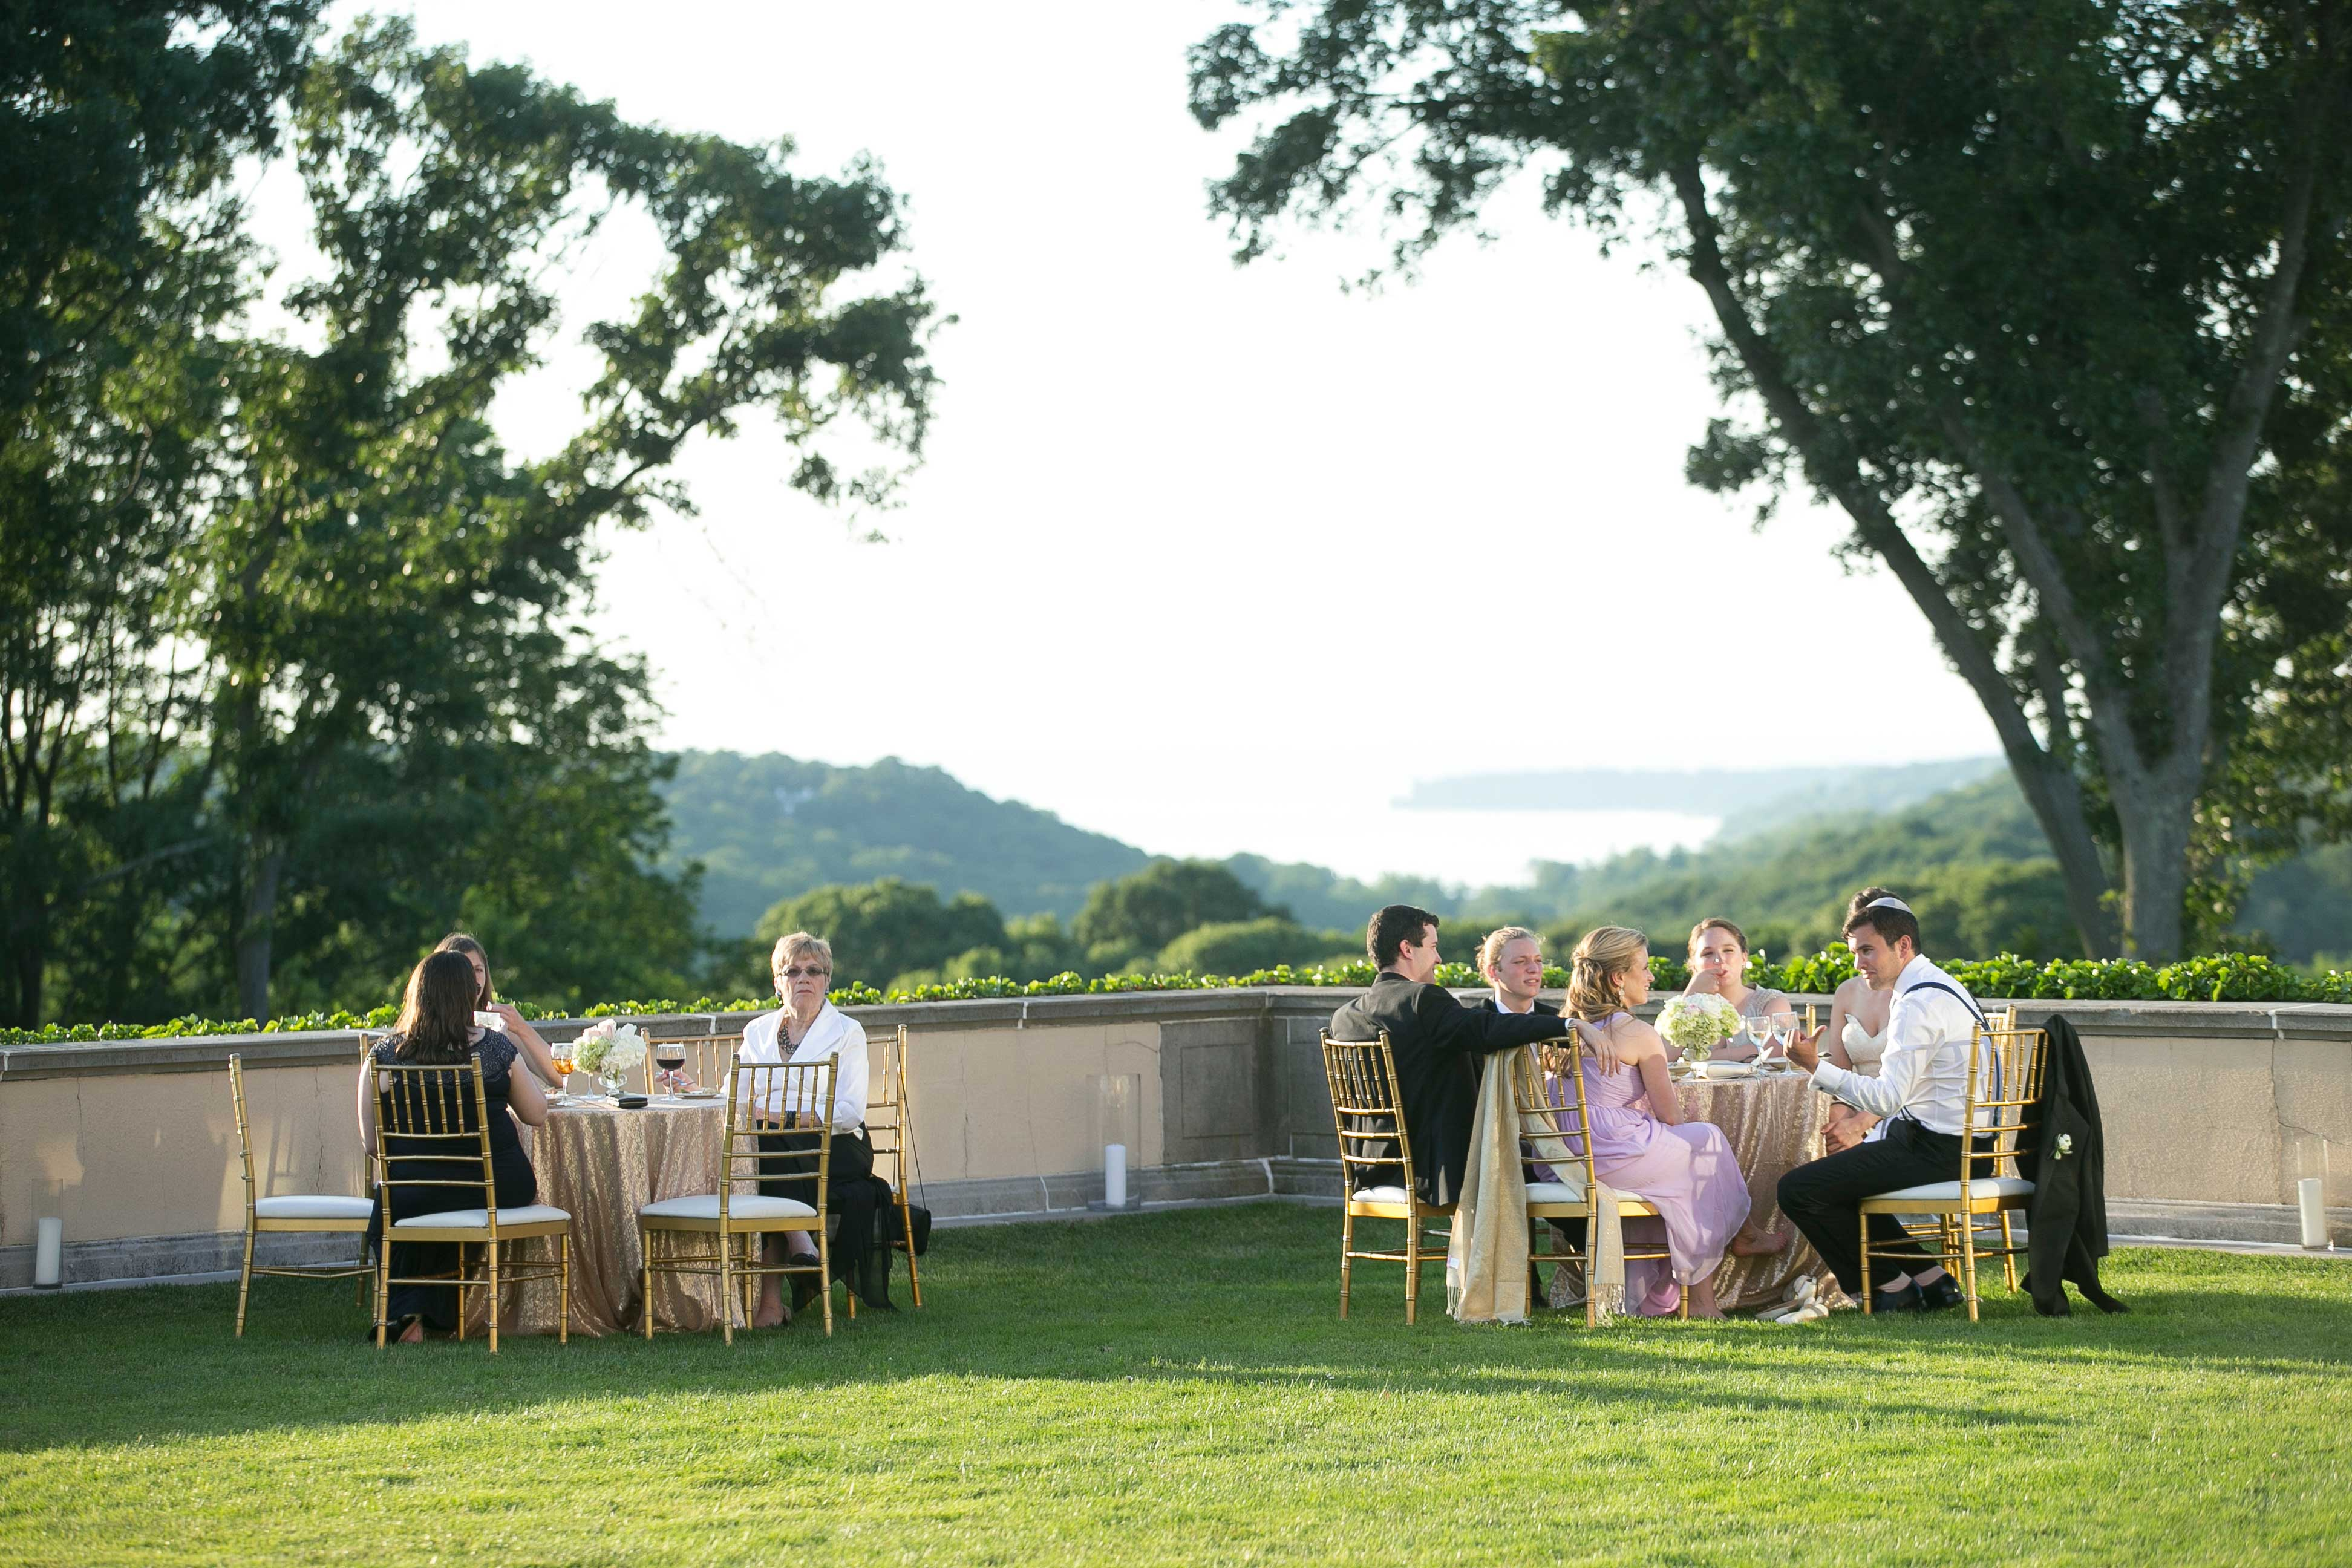 Wedding guests at outdoor cocktail hour on lawn of Oheka Castle